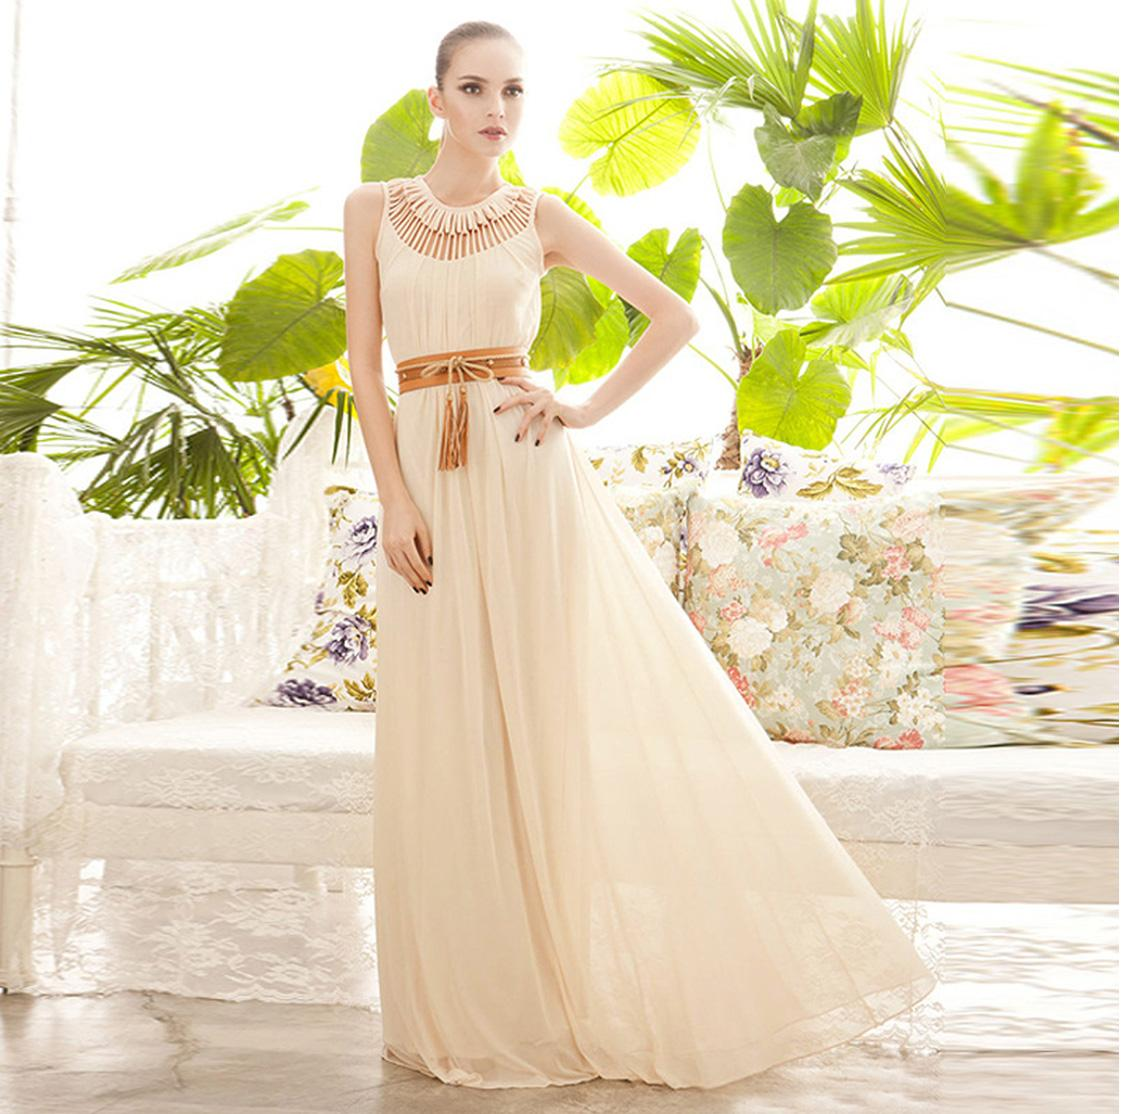 New runway dress women plus size maxi sexy long banquet embroidered mermaid round neck dress flower hollow hierarchy 2016 wedding dresses